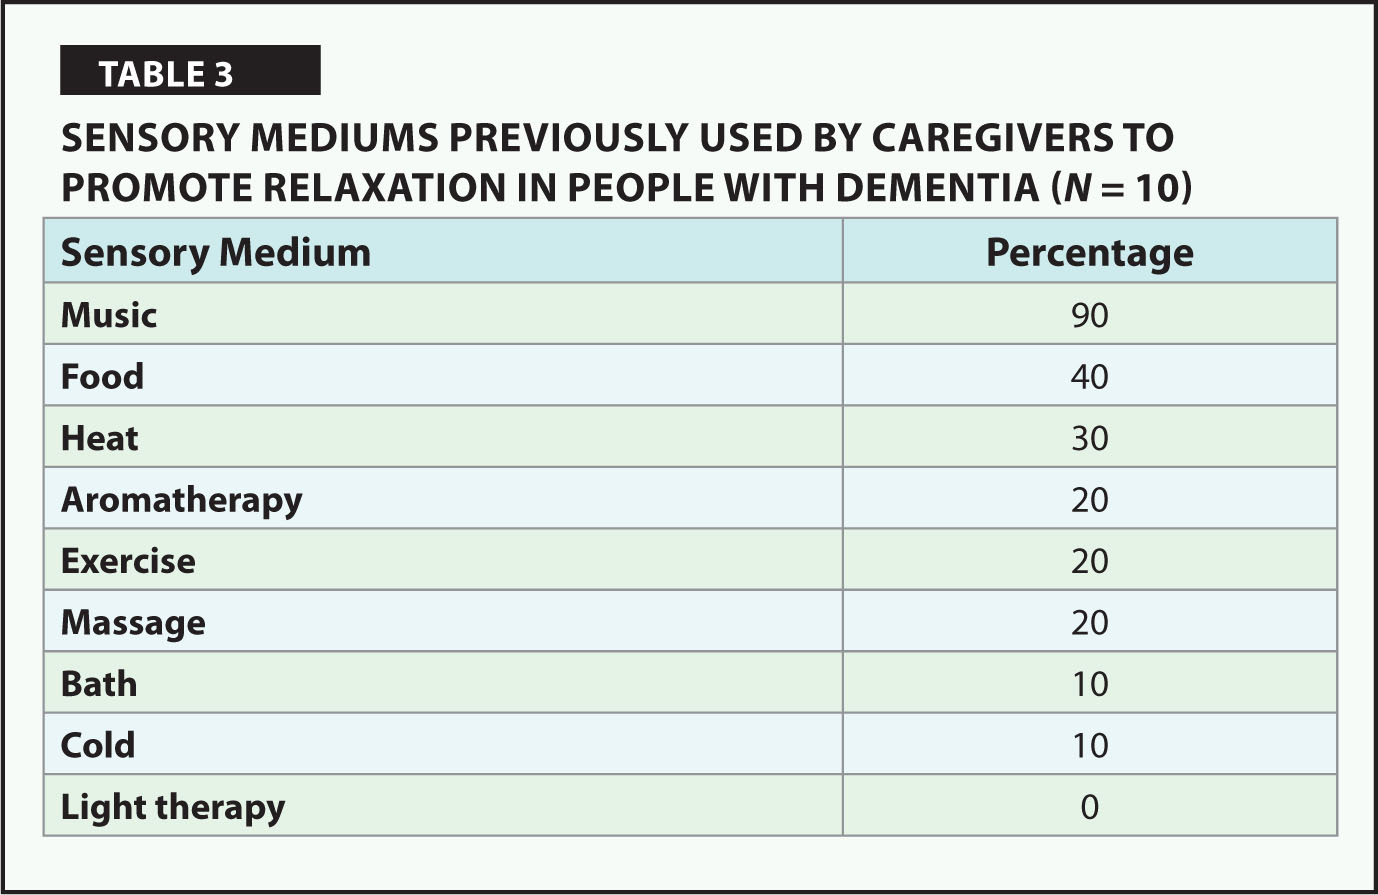 Sensory Mediums Previously Used by Caregivers to Promote Relaxation in People with Dementia (N = 10)